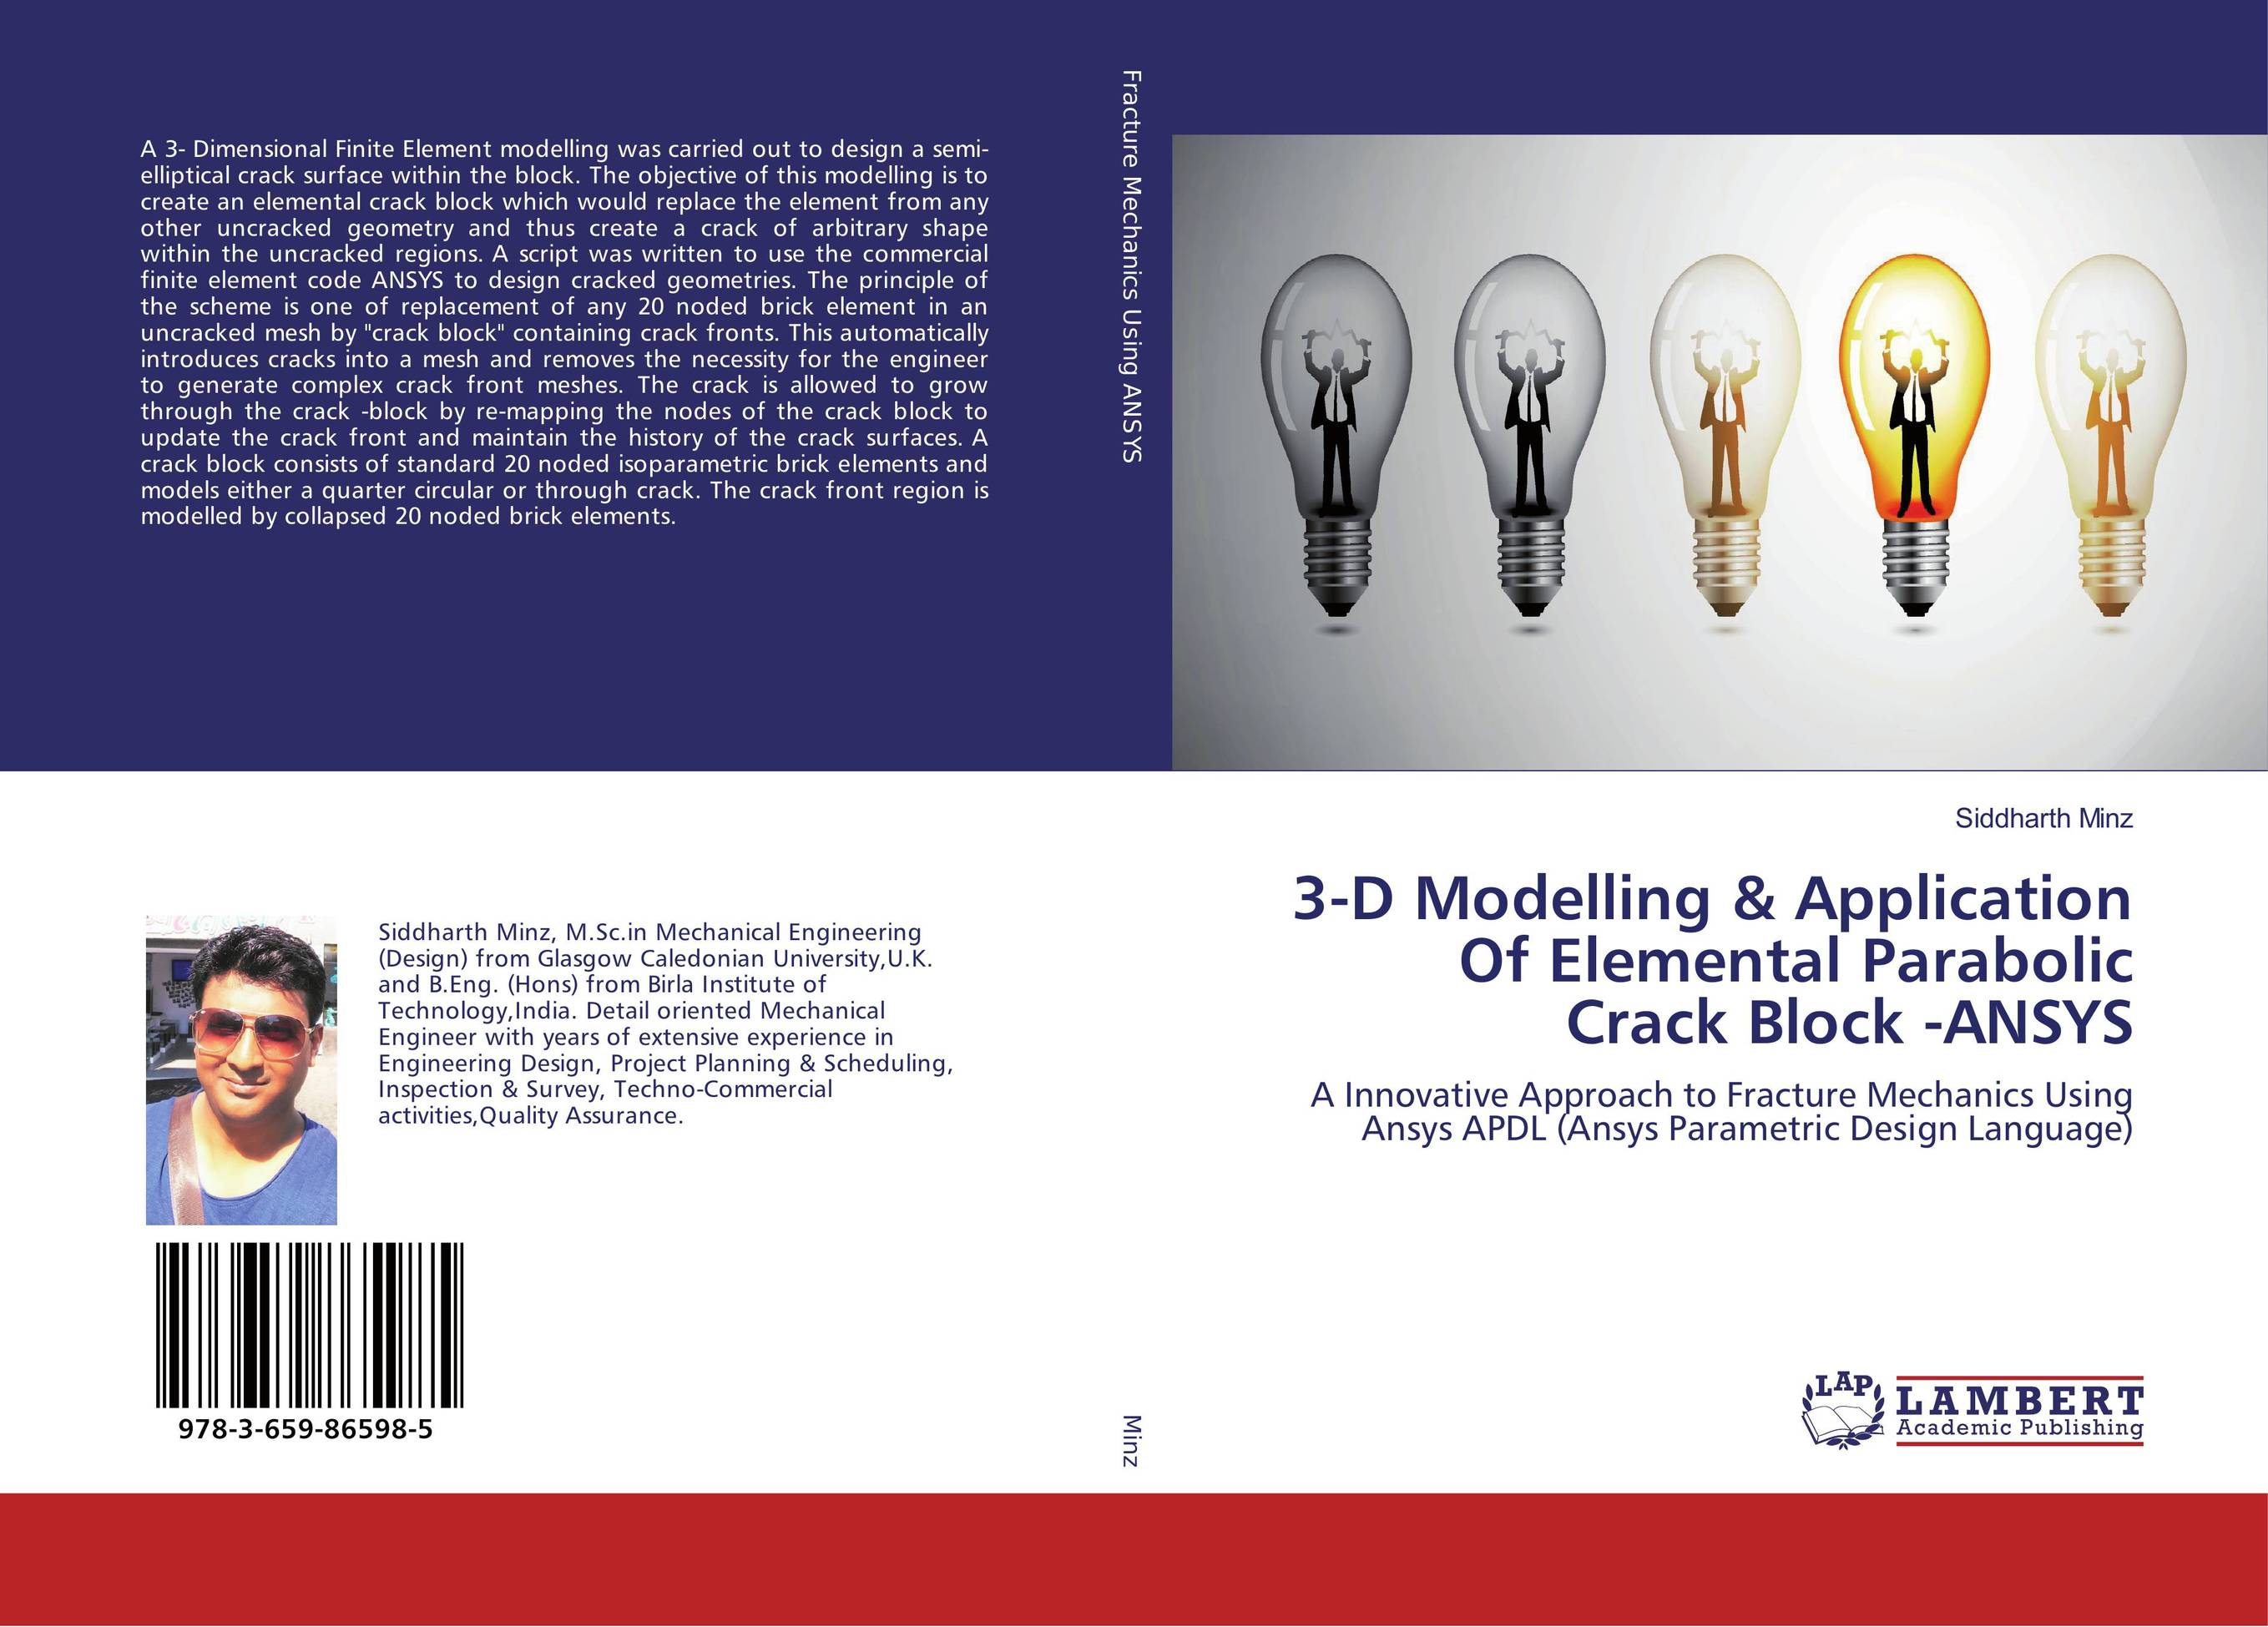 3-D Modelling & Application Of Elemental Parabolic Crack Block -ANSYS ratchet clank a crack in time